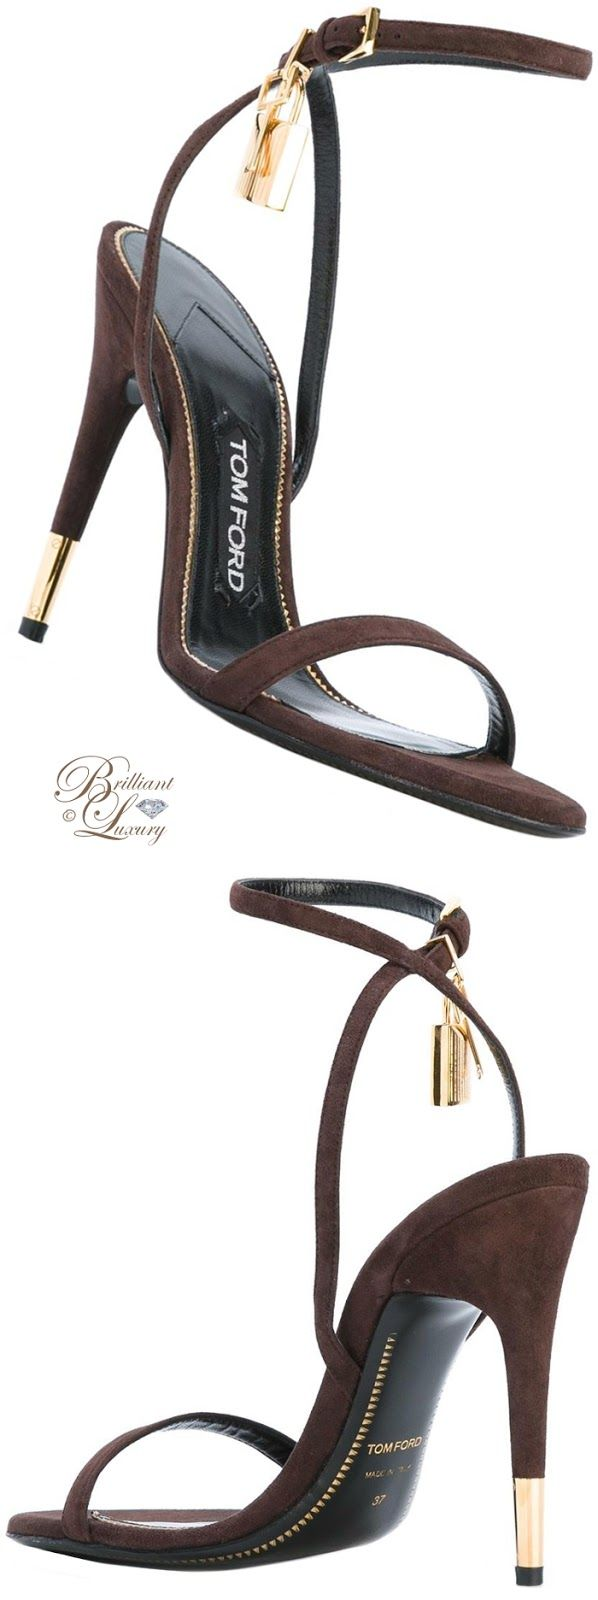 Brilliant luxury by emmy de tom ford ankle strap sandals